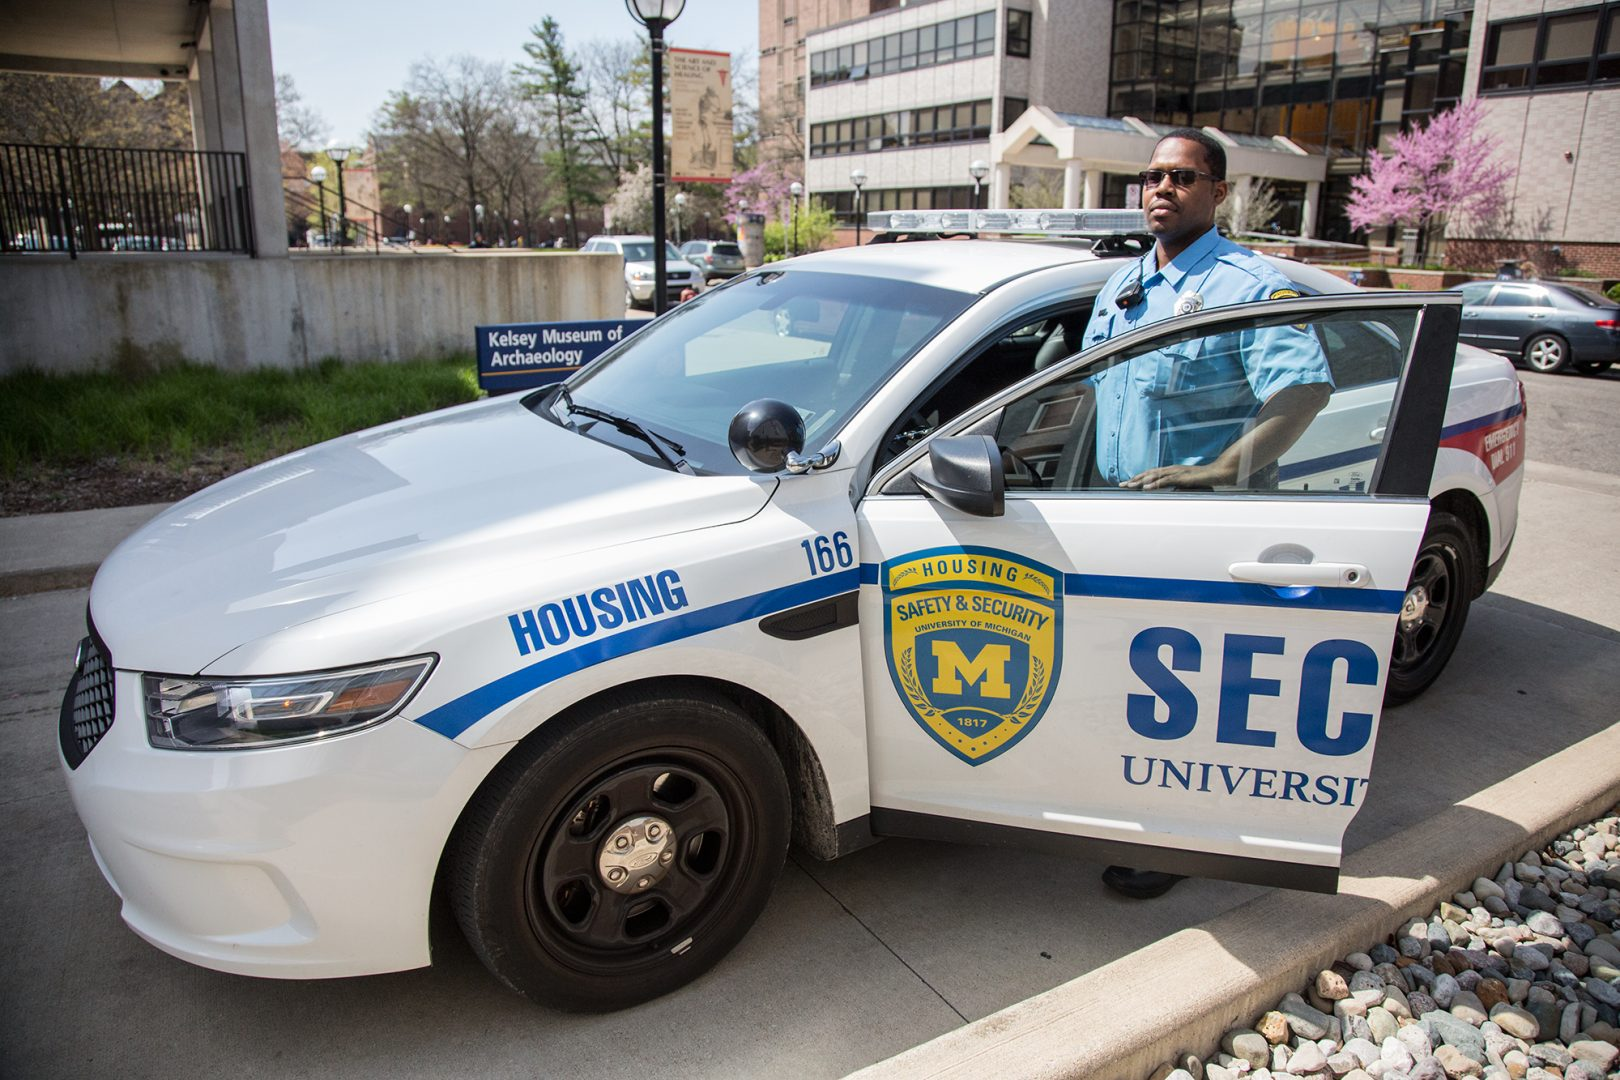 Housing Security Officer Michael Minor on patrol